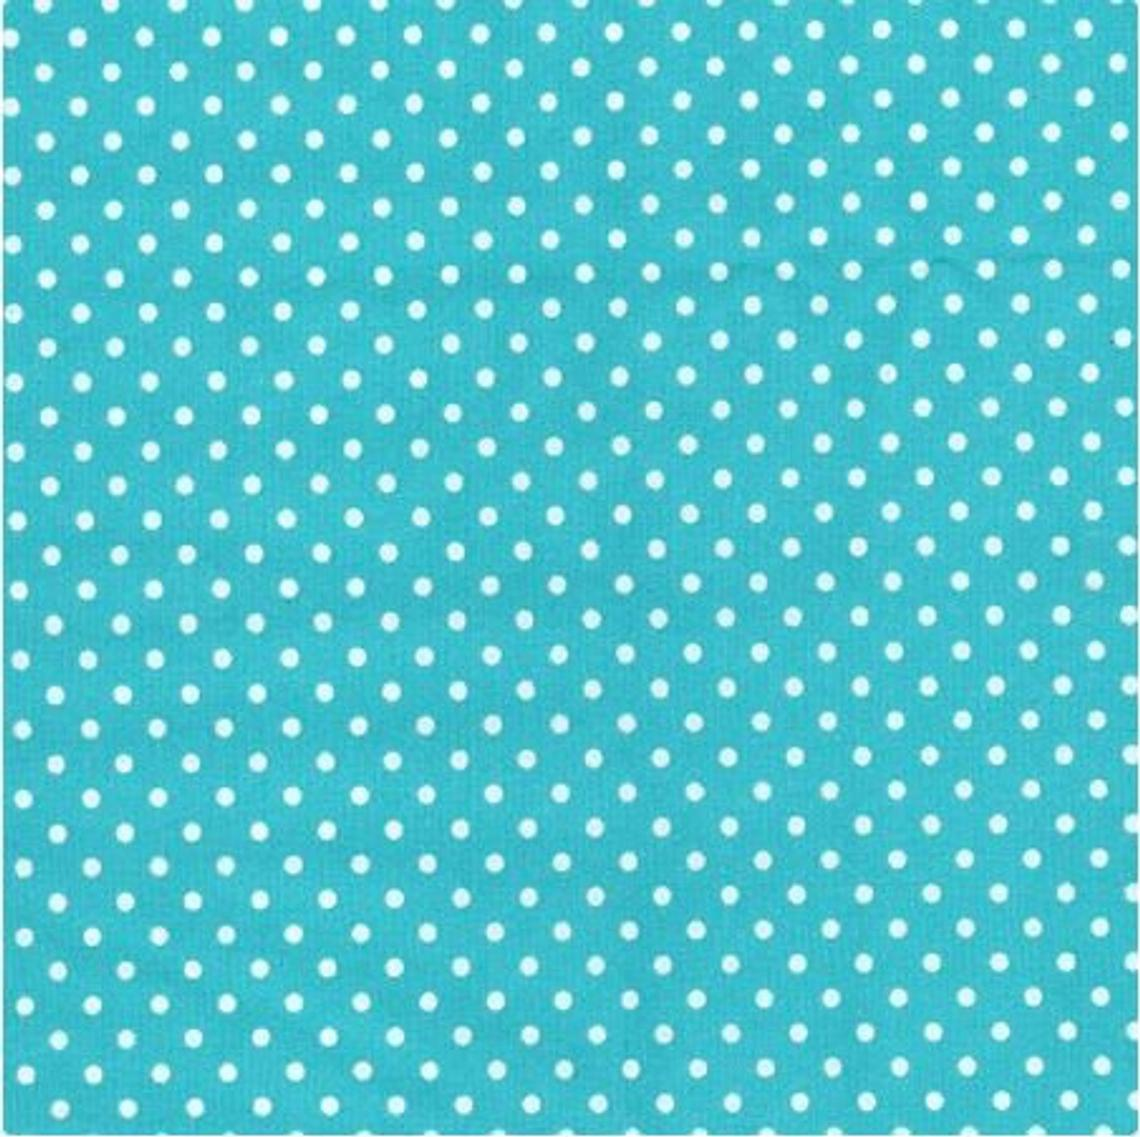 Excellent Quality Pastel Turquoise Aqua 3mm Spotty Polka Dot 100% Cotton Poplin Fabric 130gsm Sewing Quilting Craft Home Decor